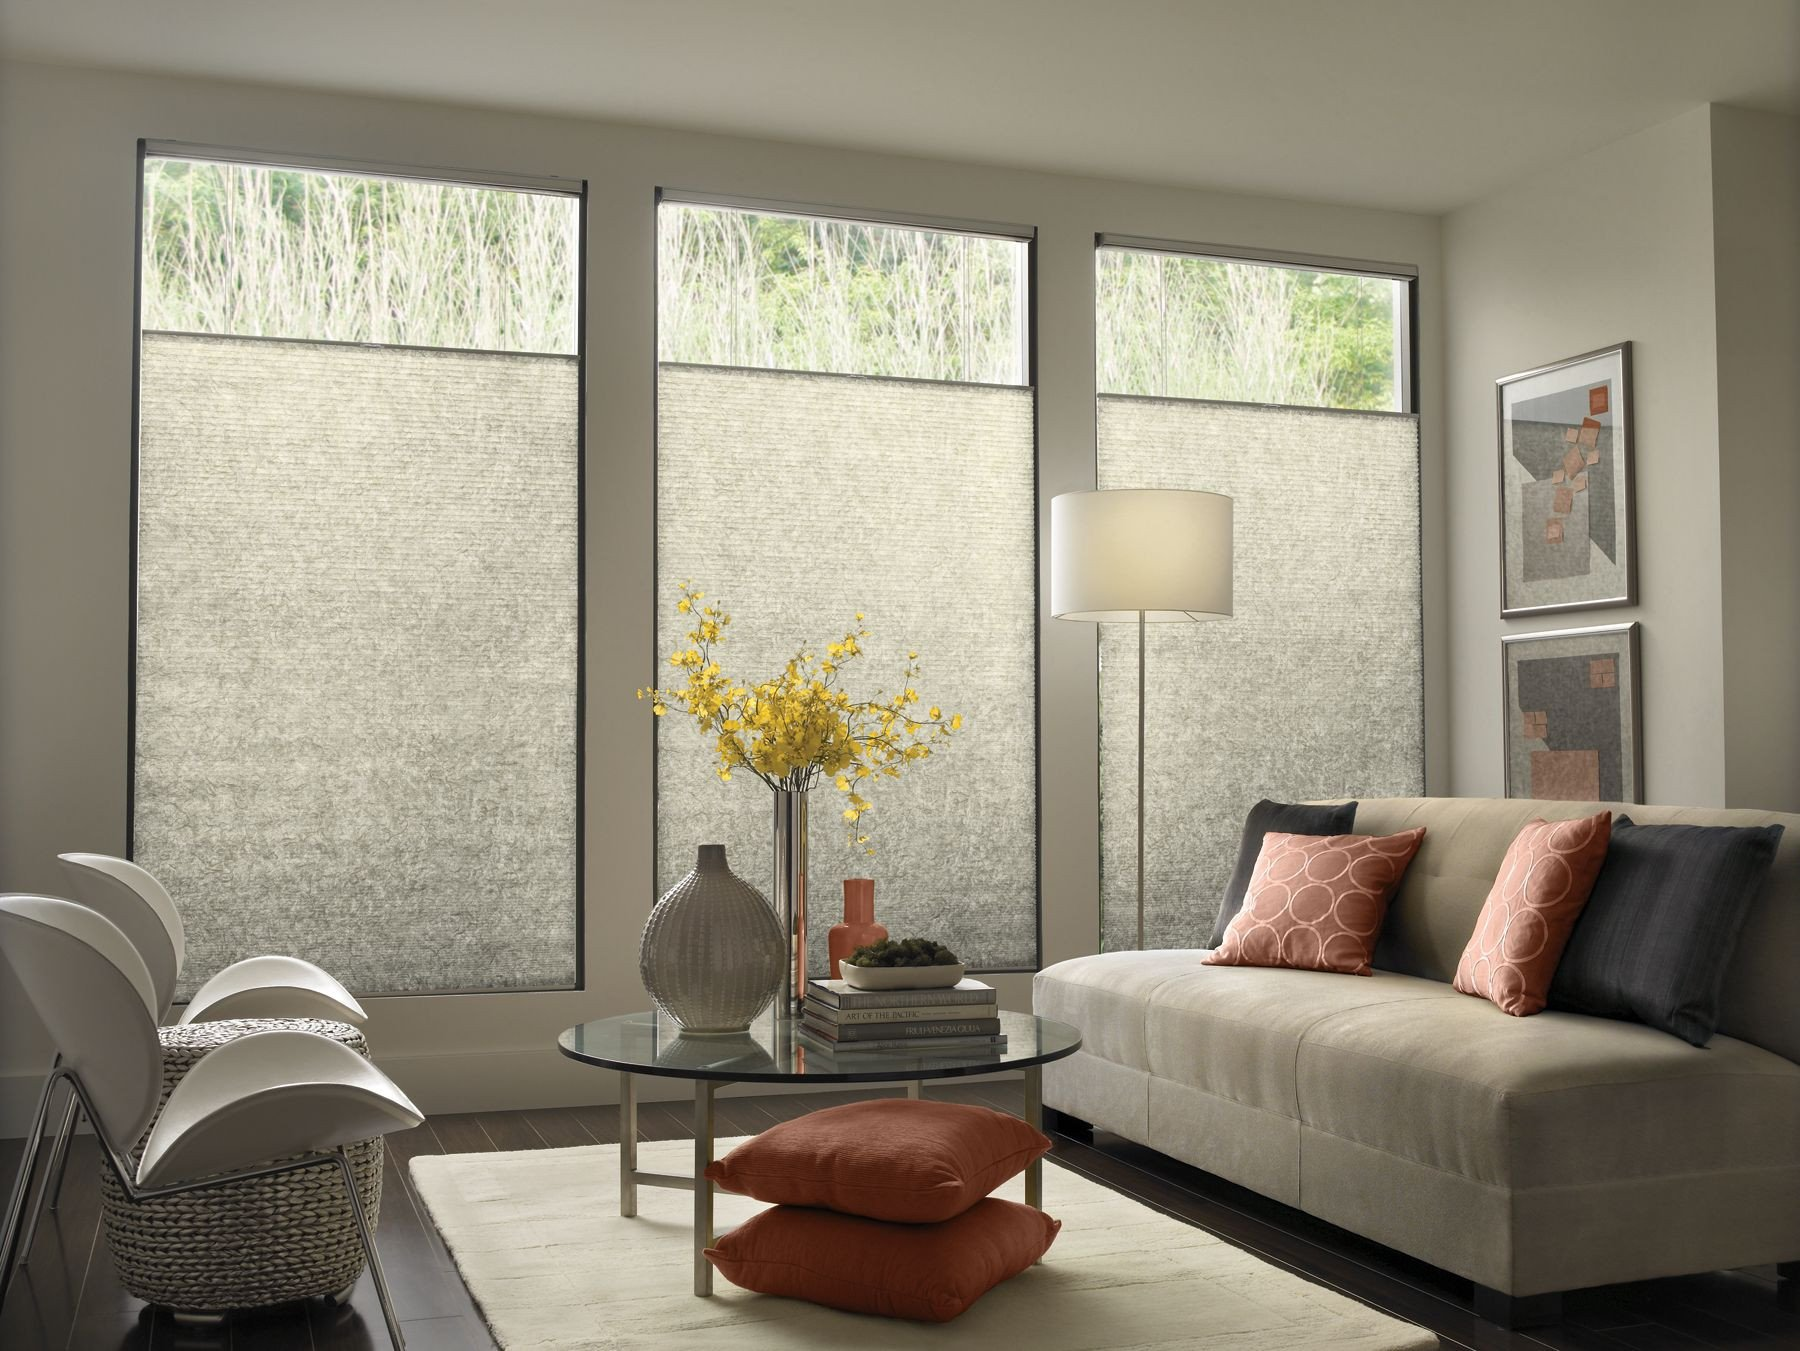 Contemporary Living Room Window Treatments Beautiful Modern Contemporary Window Treatments with Mid Century Modern sofa Contemporary Living